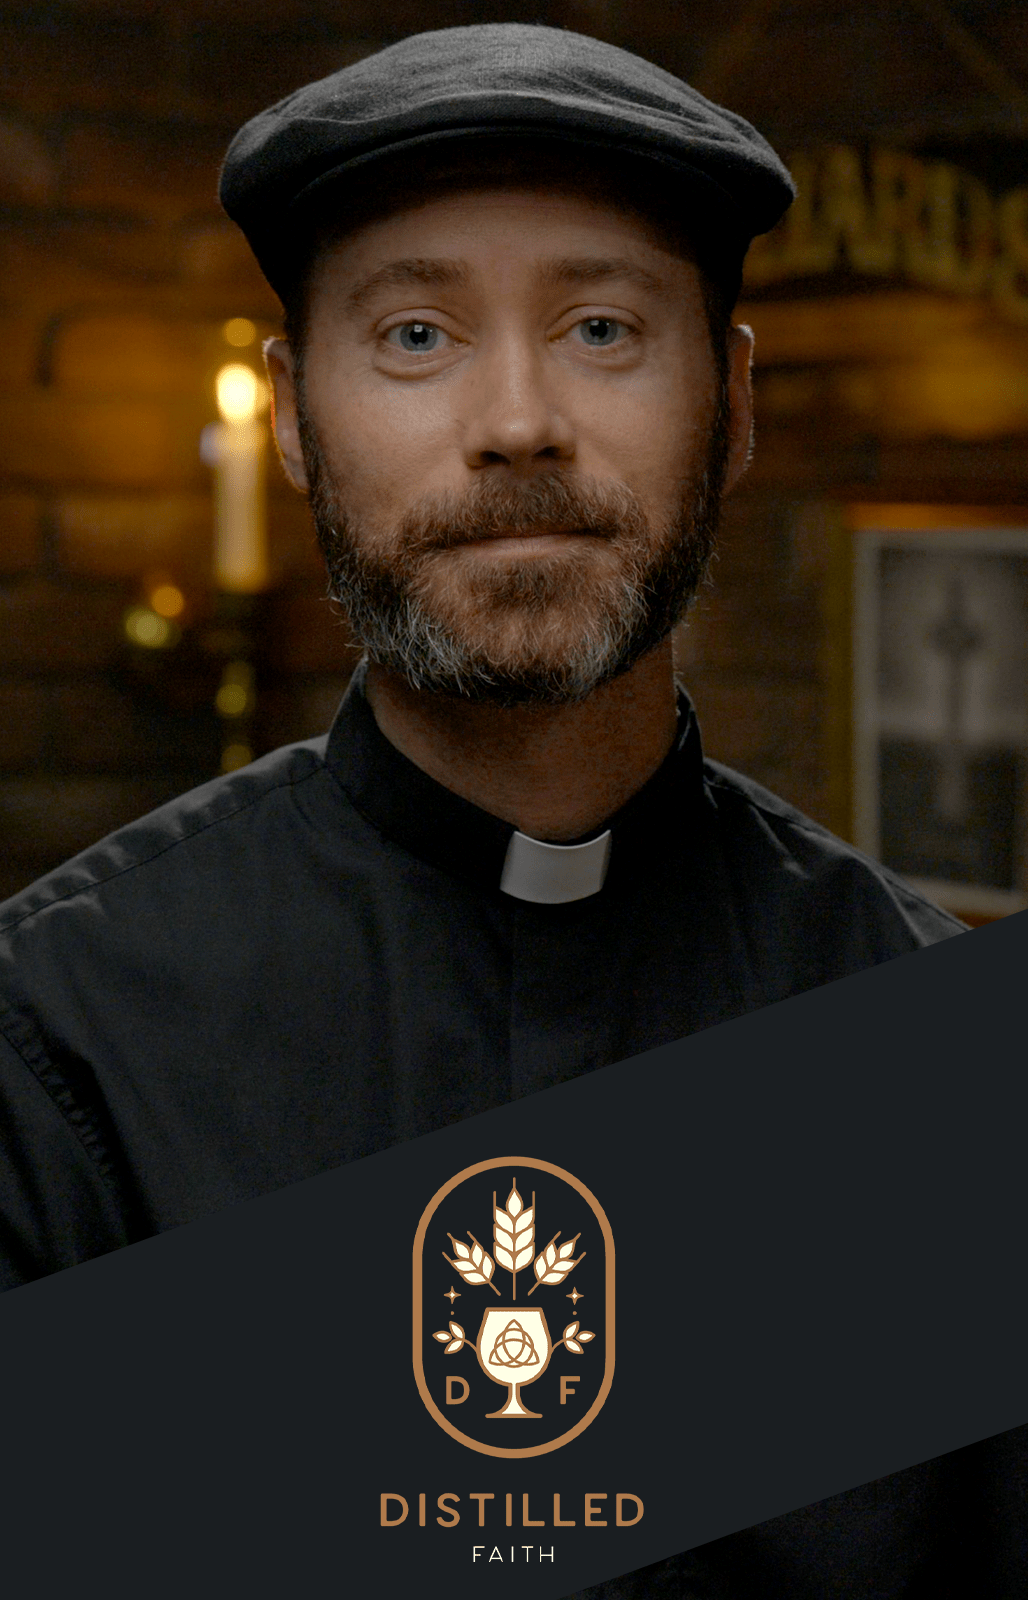 Priest with cool hat in pub